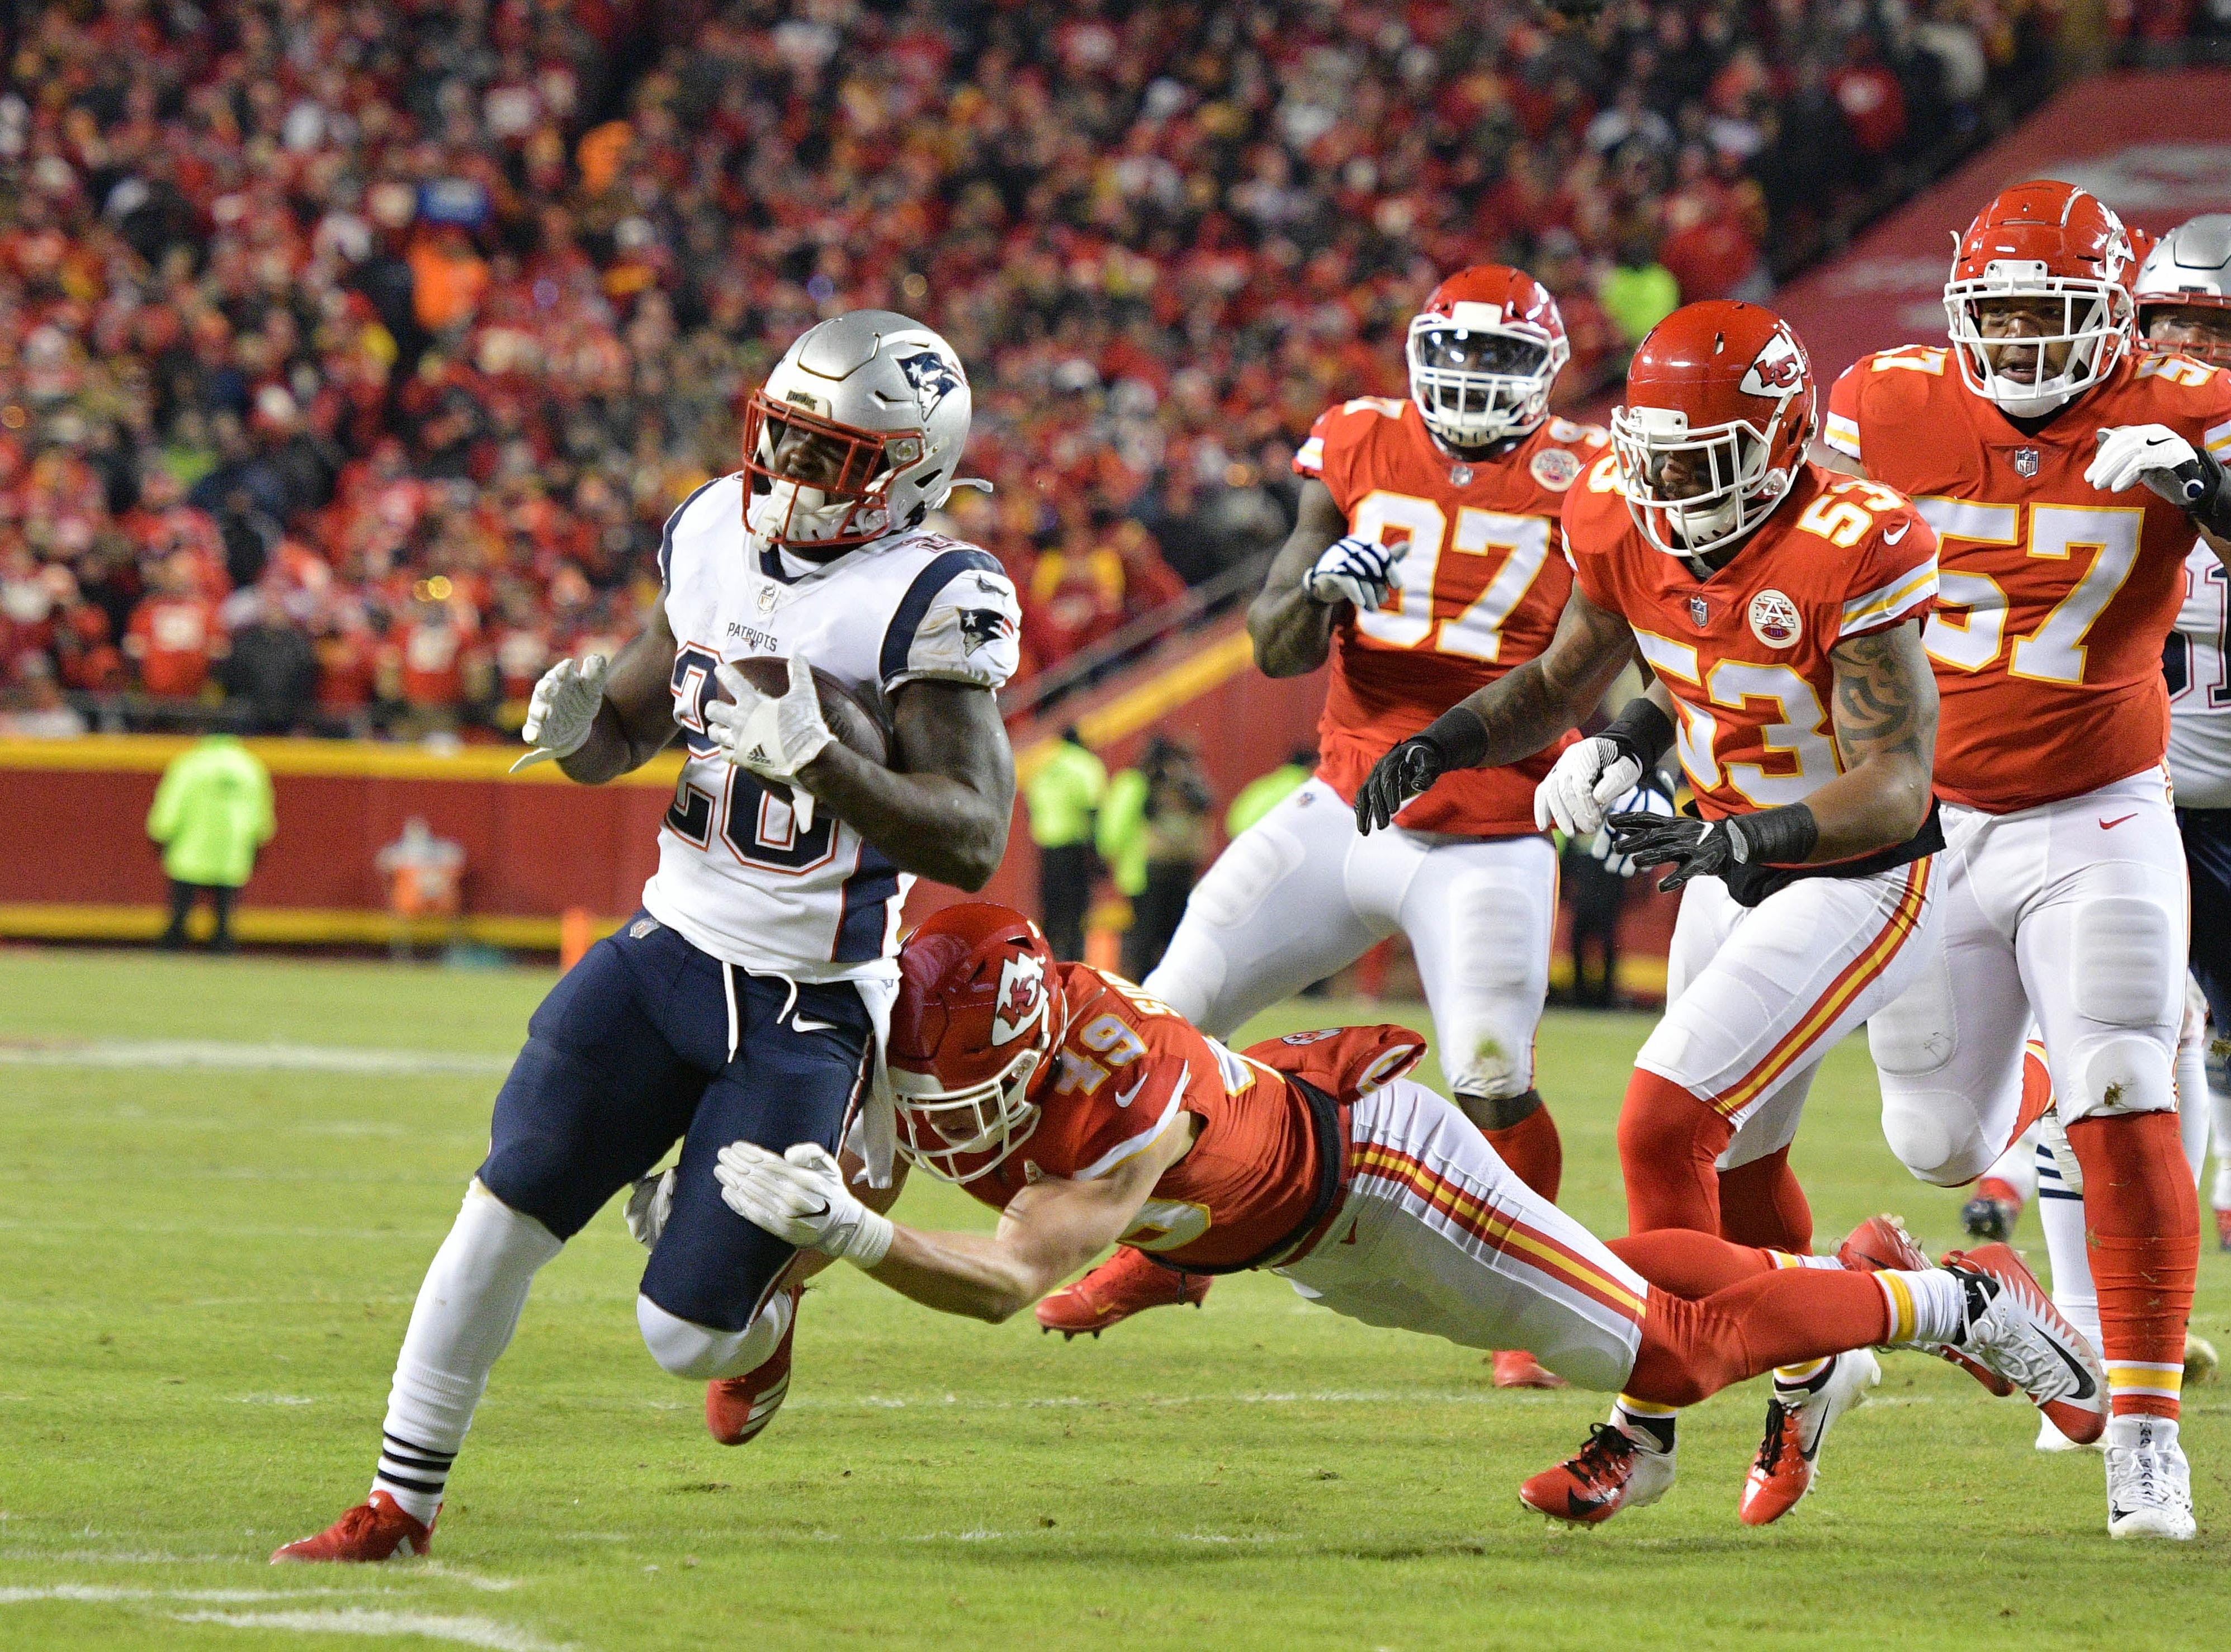 New England Patriots running back Sony Michel (26) carries the ball as Kansas City Chiefs defensive back Daniel Sorensen (49) defends during the first quarter.